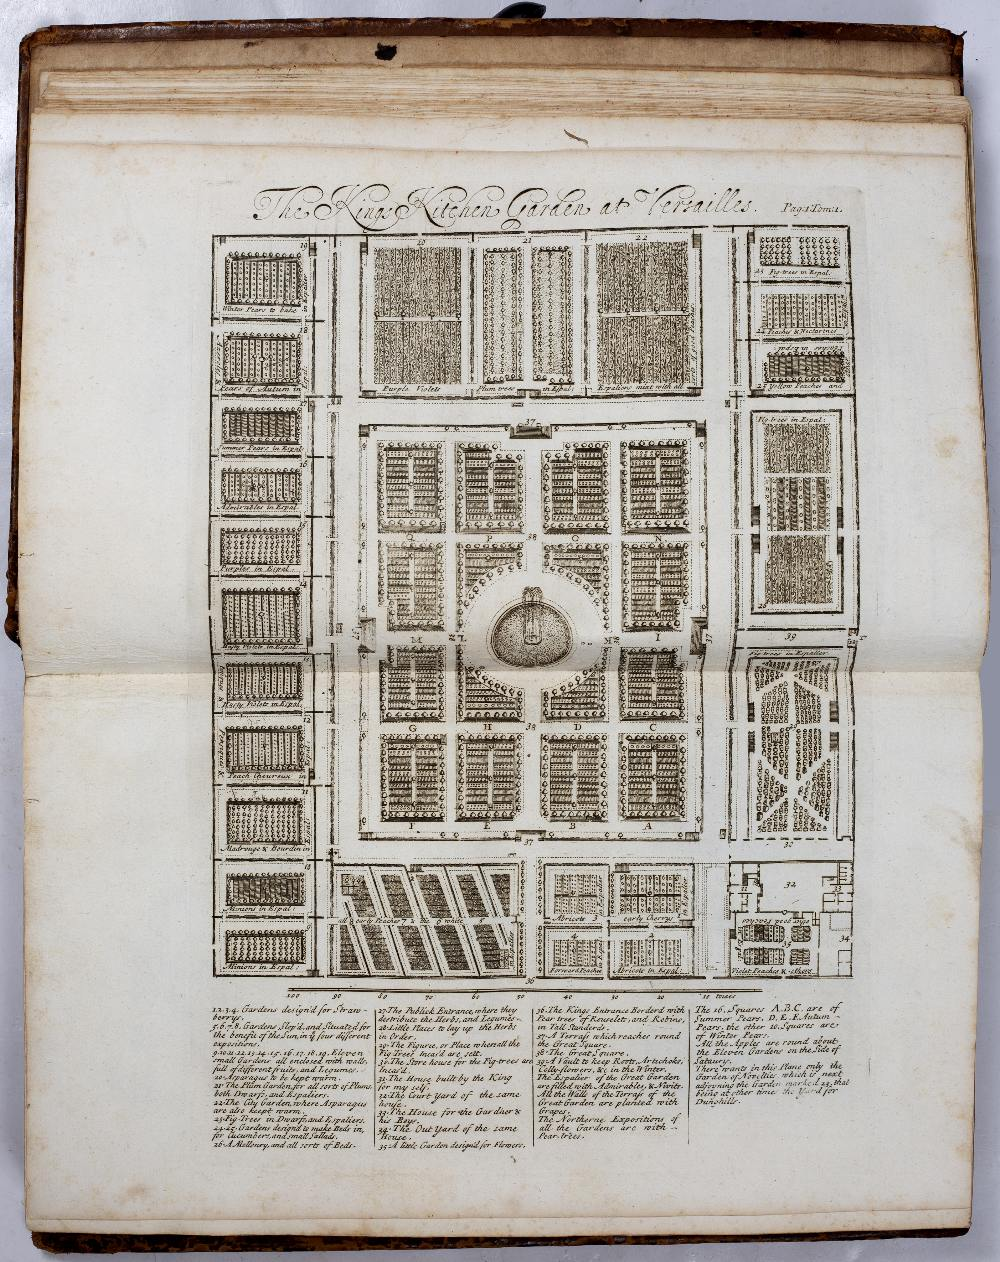 LA QUINTINYE, Jean de, 'The Compleat Gard'ner; or Directions for Cultivating and Right Ordering of - Image 3 of 10